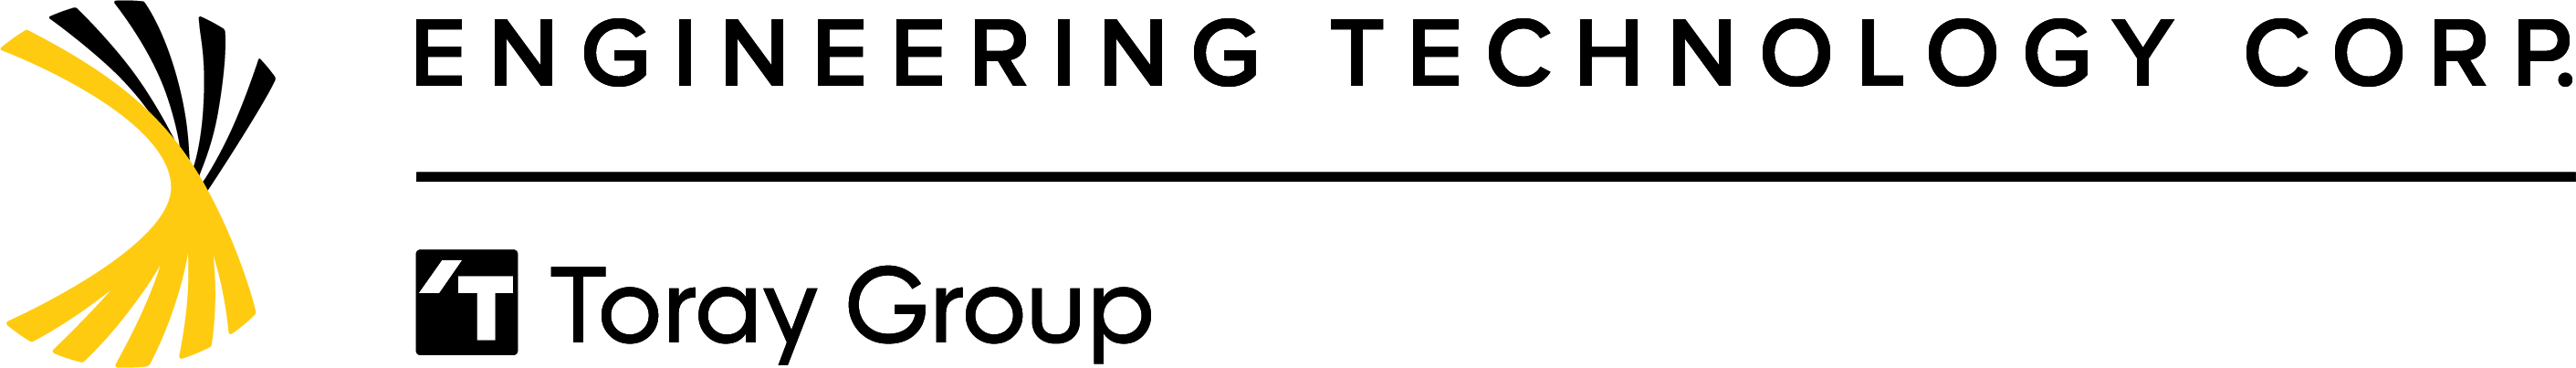 Engineering technology corp logo